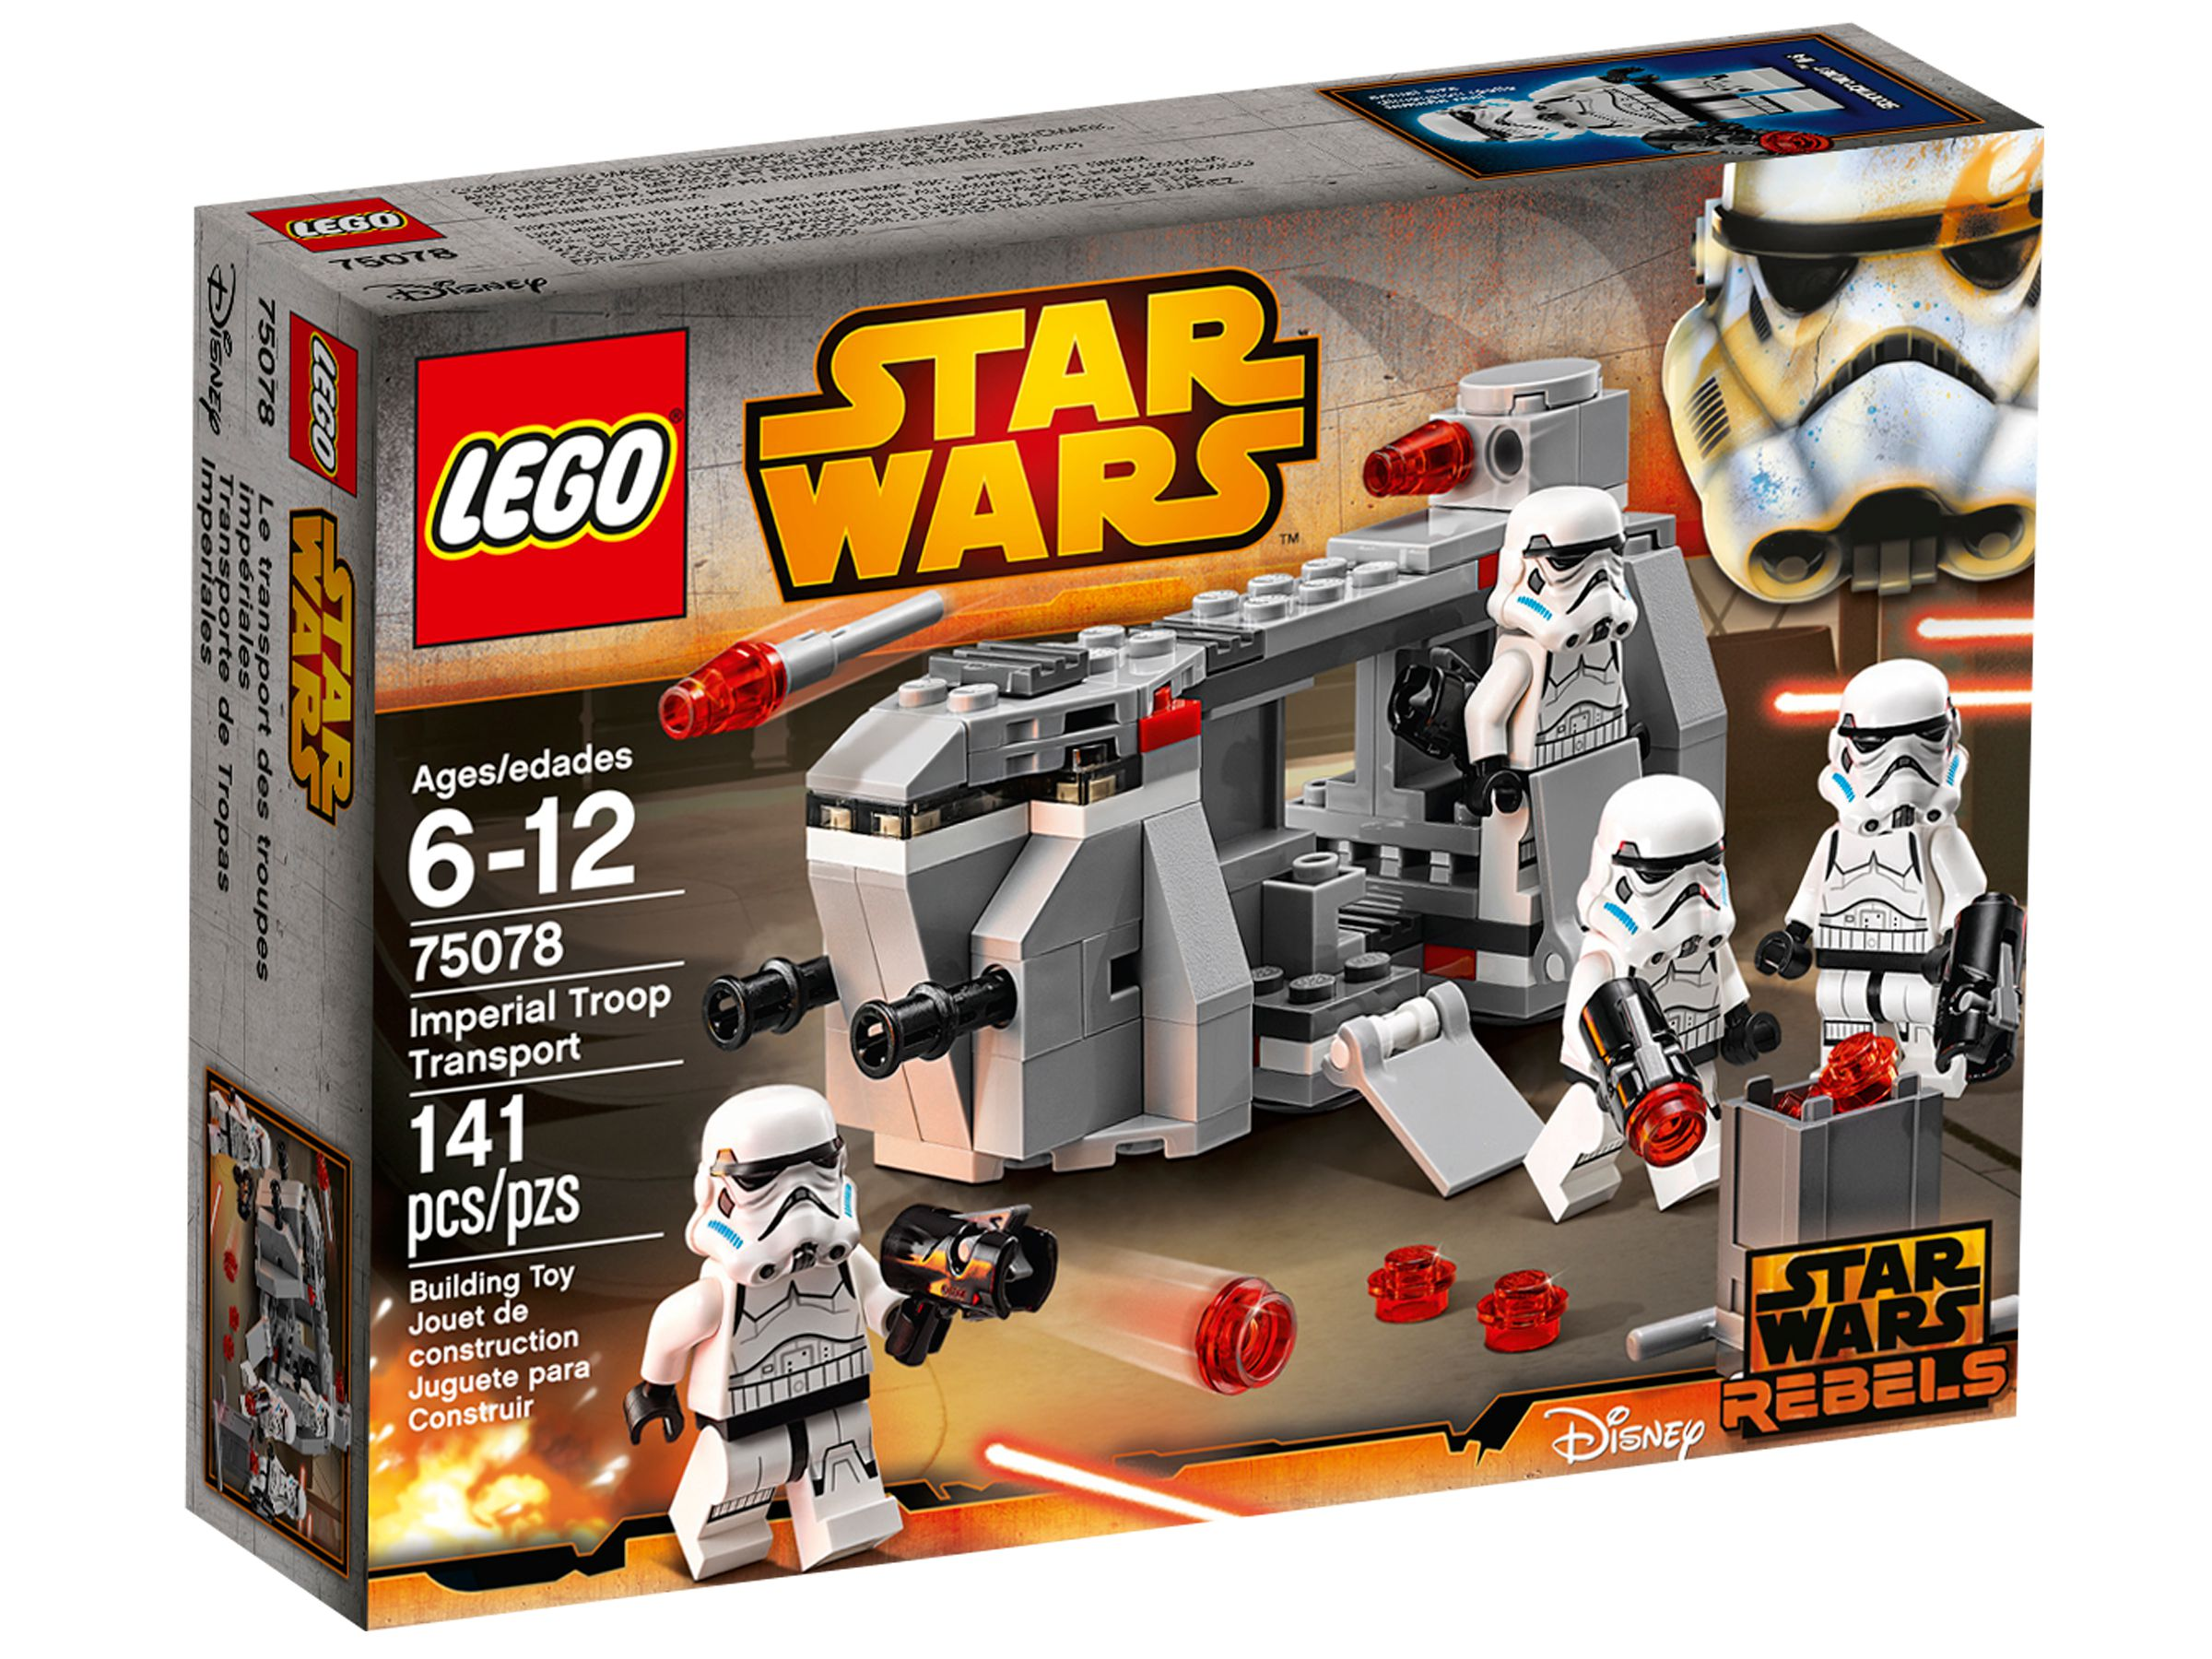 LEGO Star Wars 75078 Imperial Troop Transport LEGO_75078_alt1.jpg